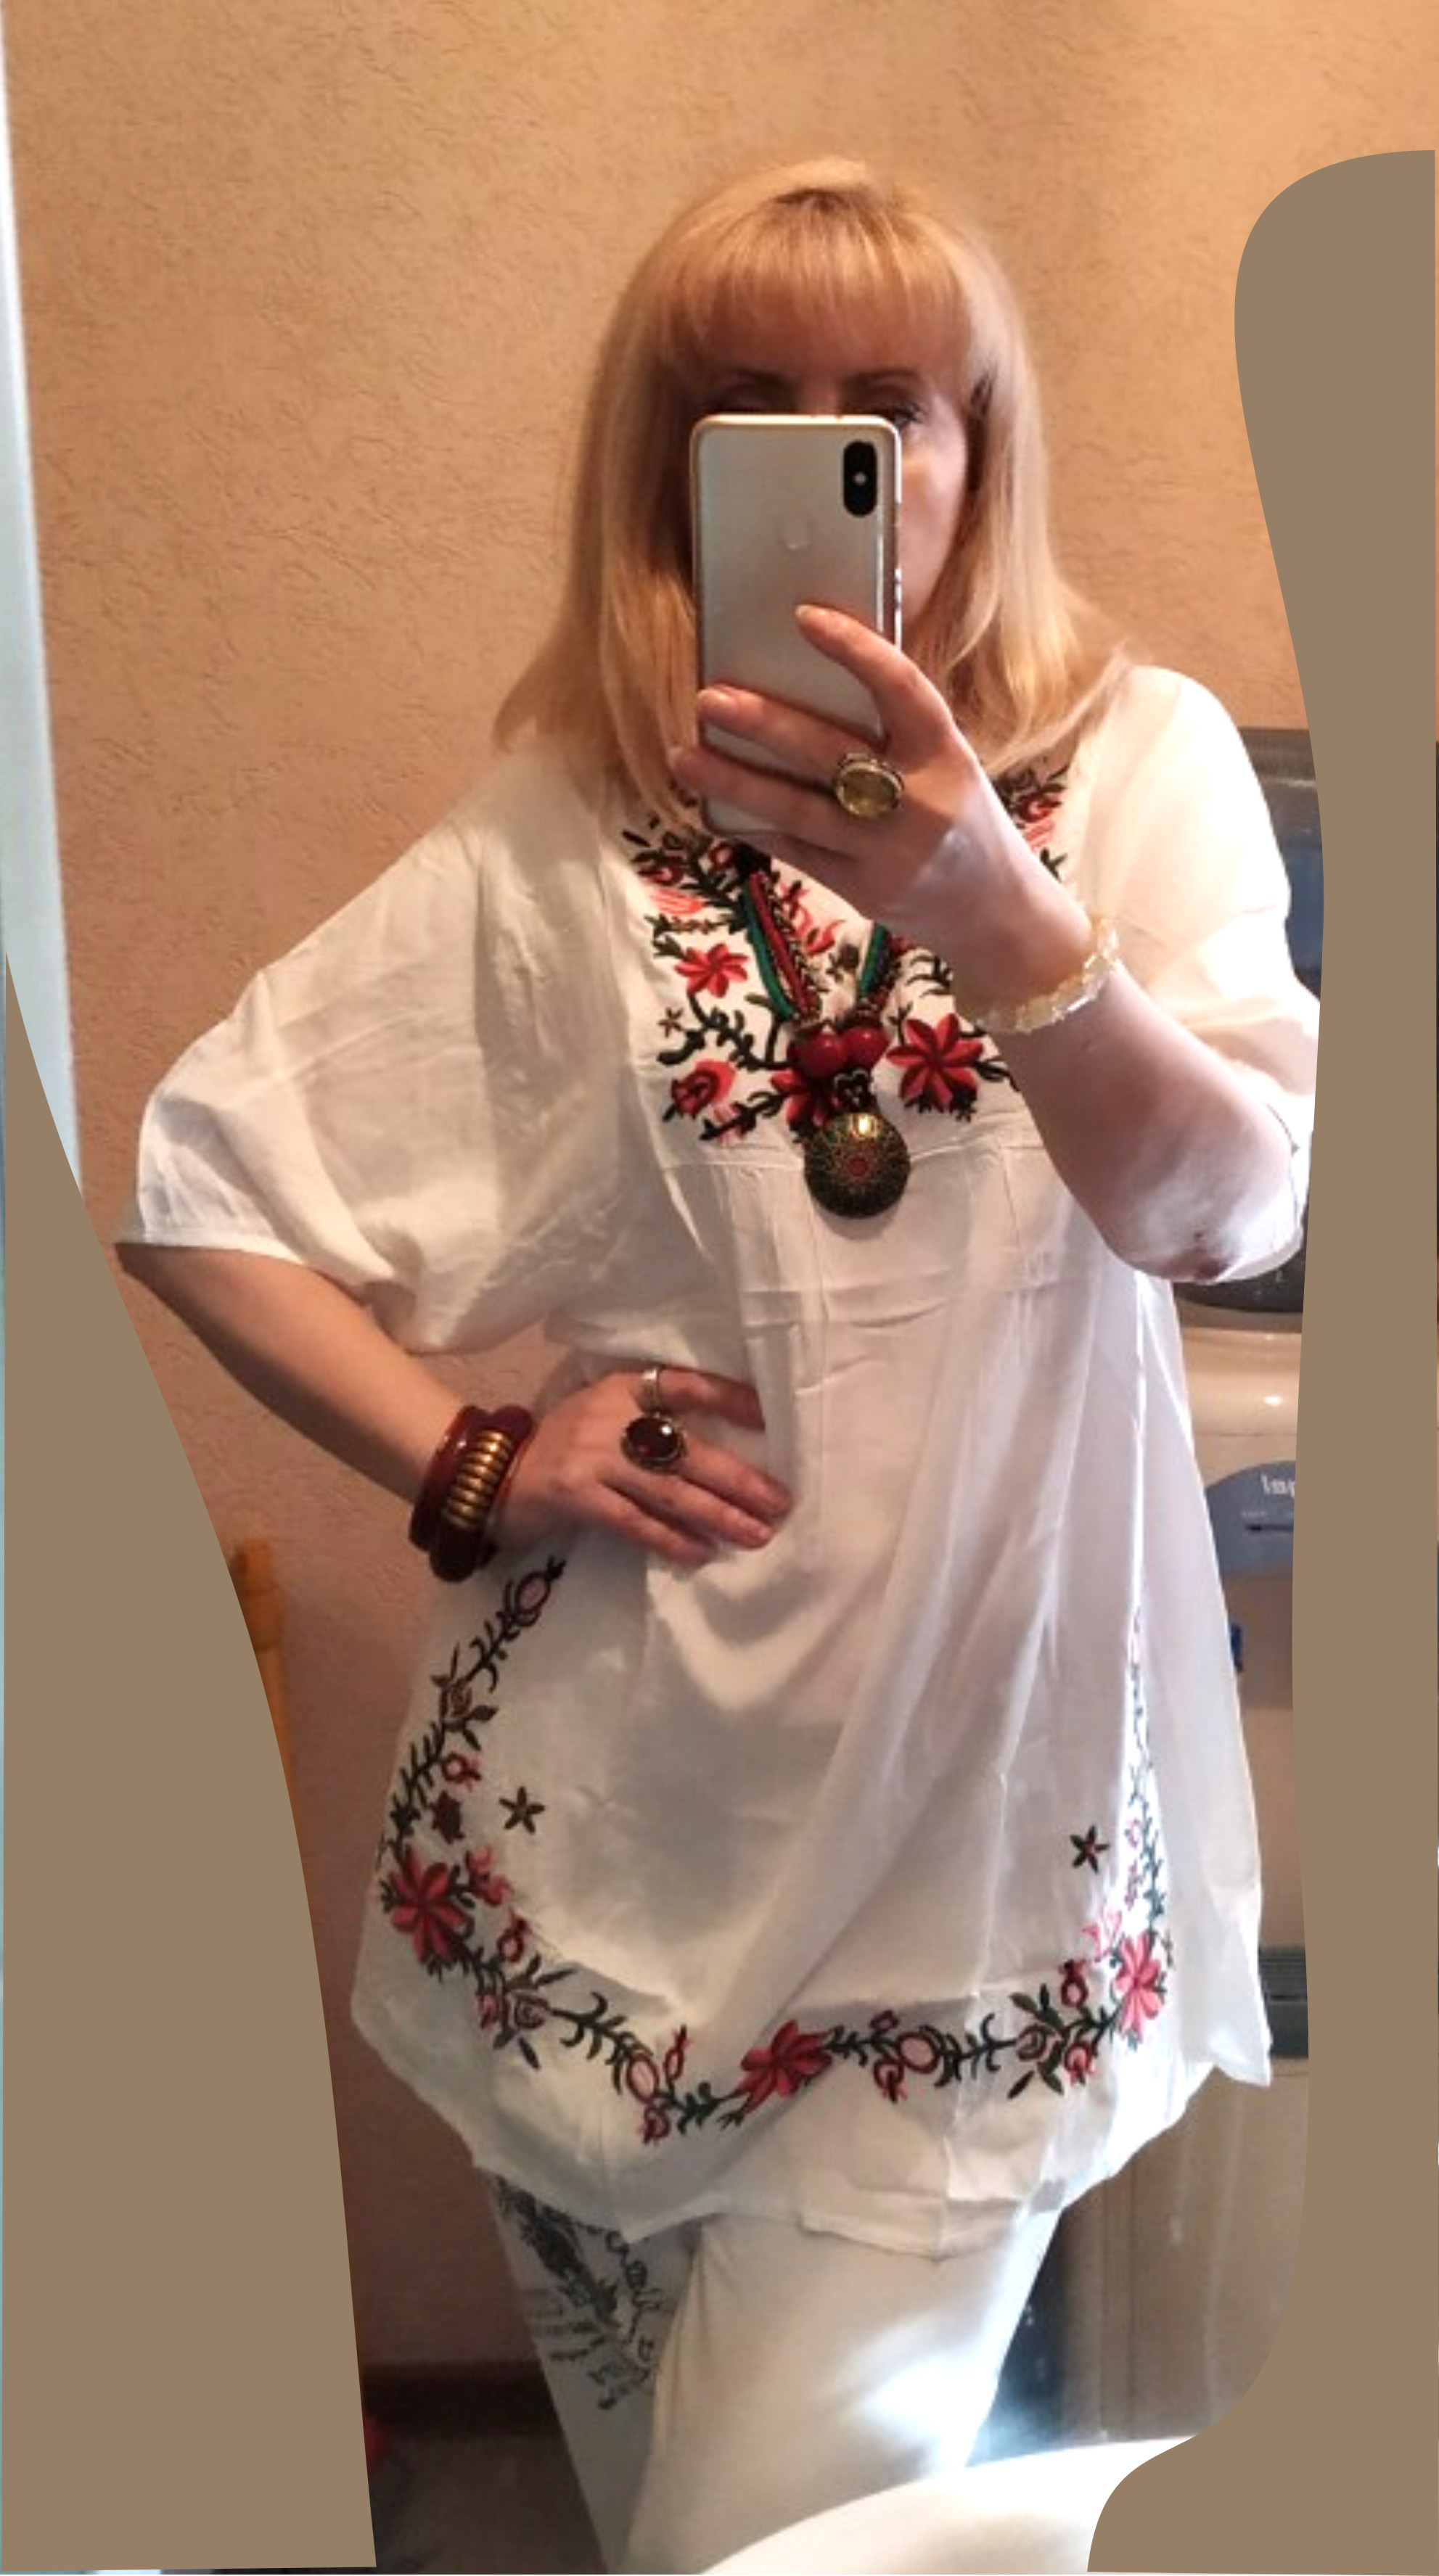 Summer Women Mexican Embroidered Floral Peasant Blouse Vintage Ethnic Tunic Boho Hippie Clothes Tops Blusa Feminina photo review